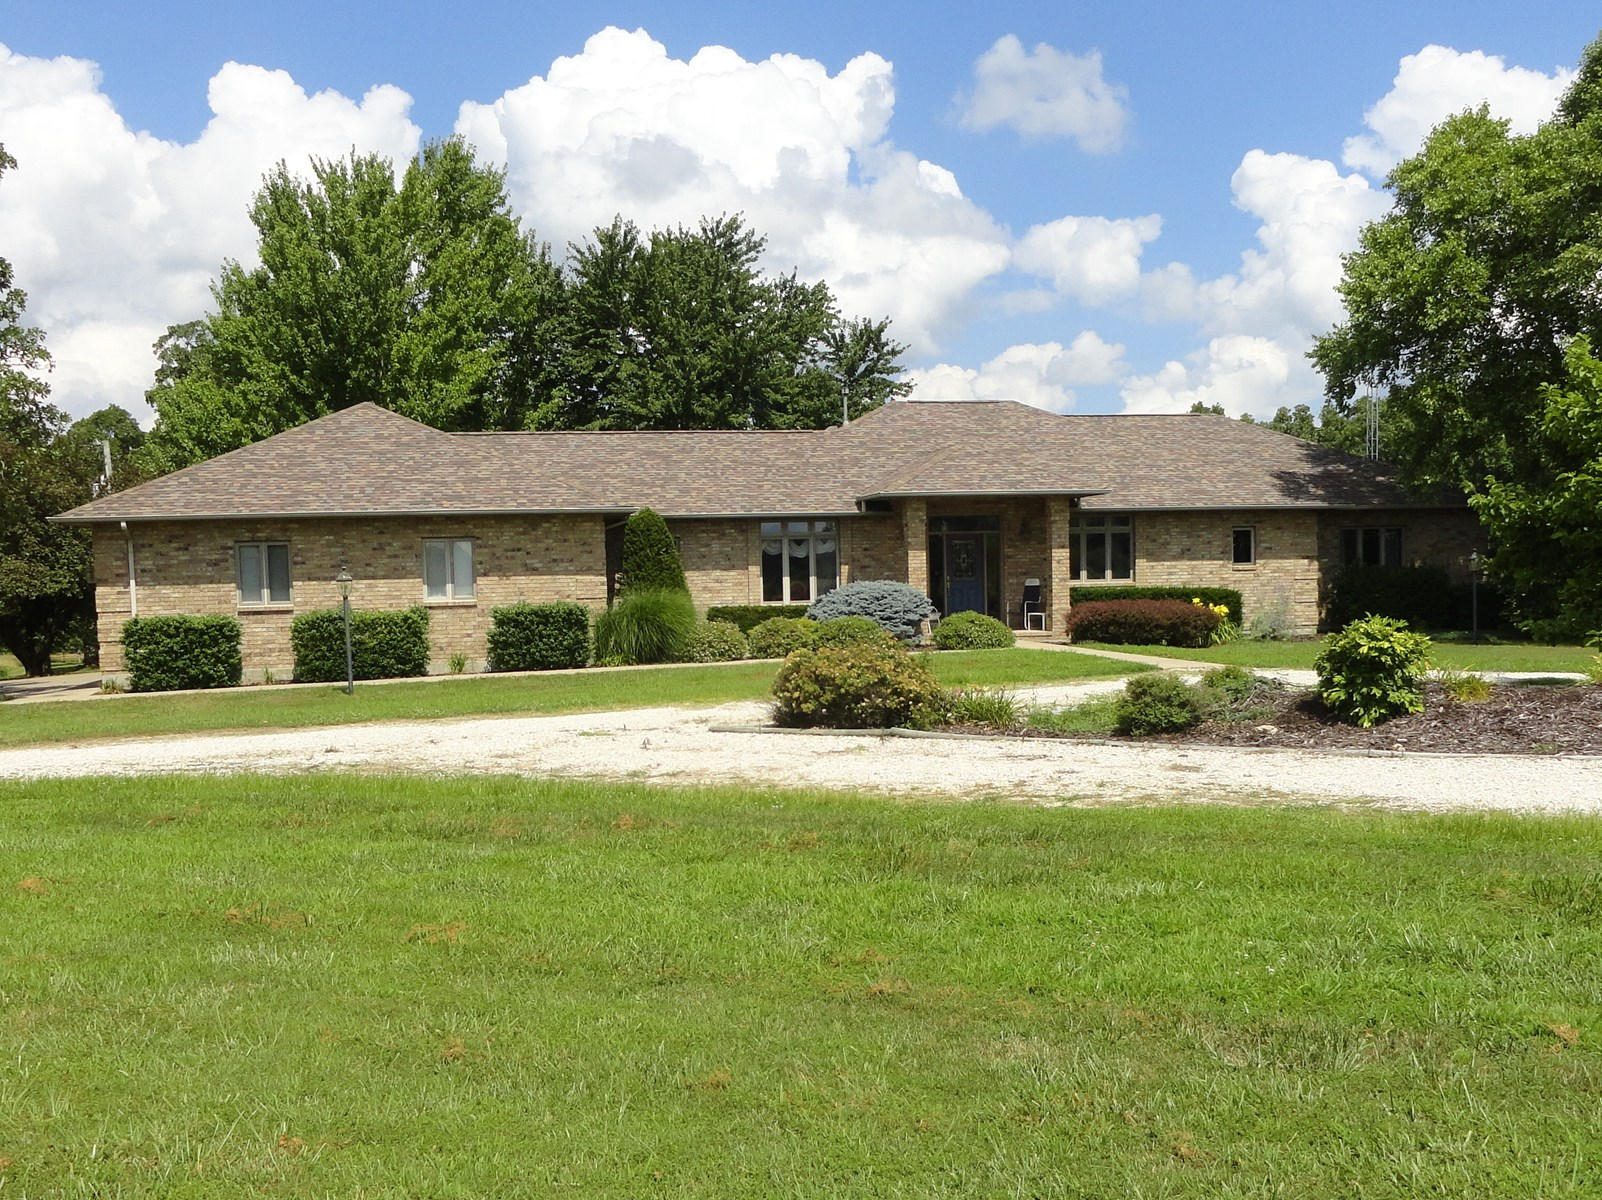 120-Acre Country Home with Acreage For Sale in Richland, MO